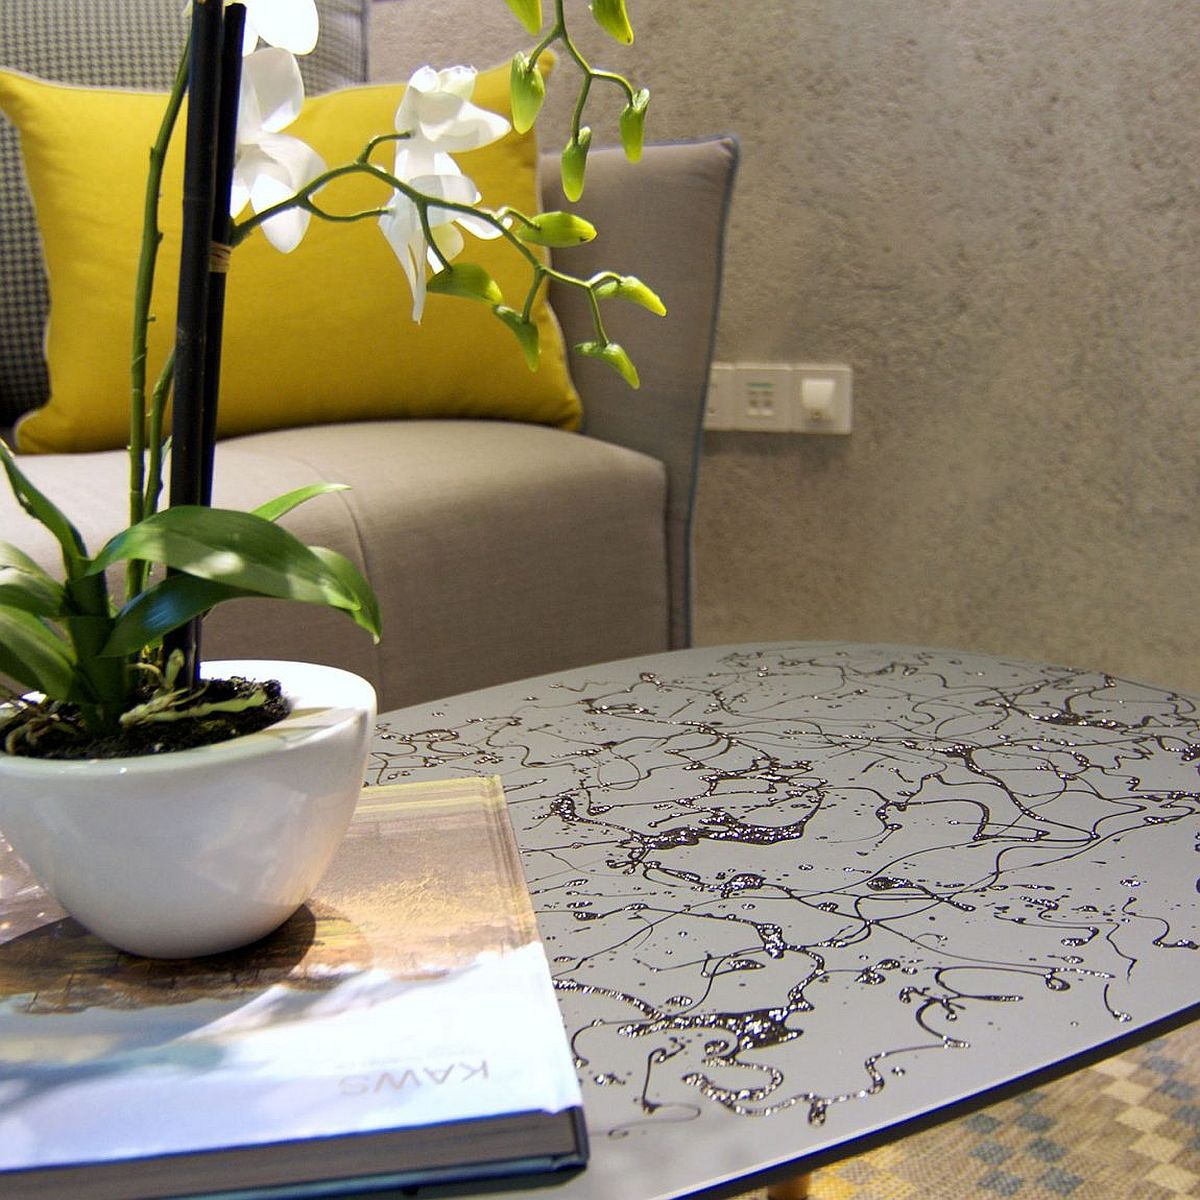 Fabulous coffee table adds personality to the quirky home in Singapore